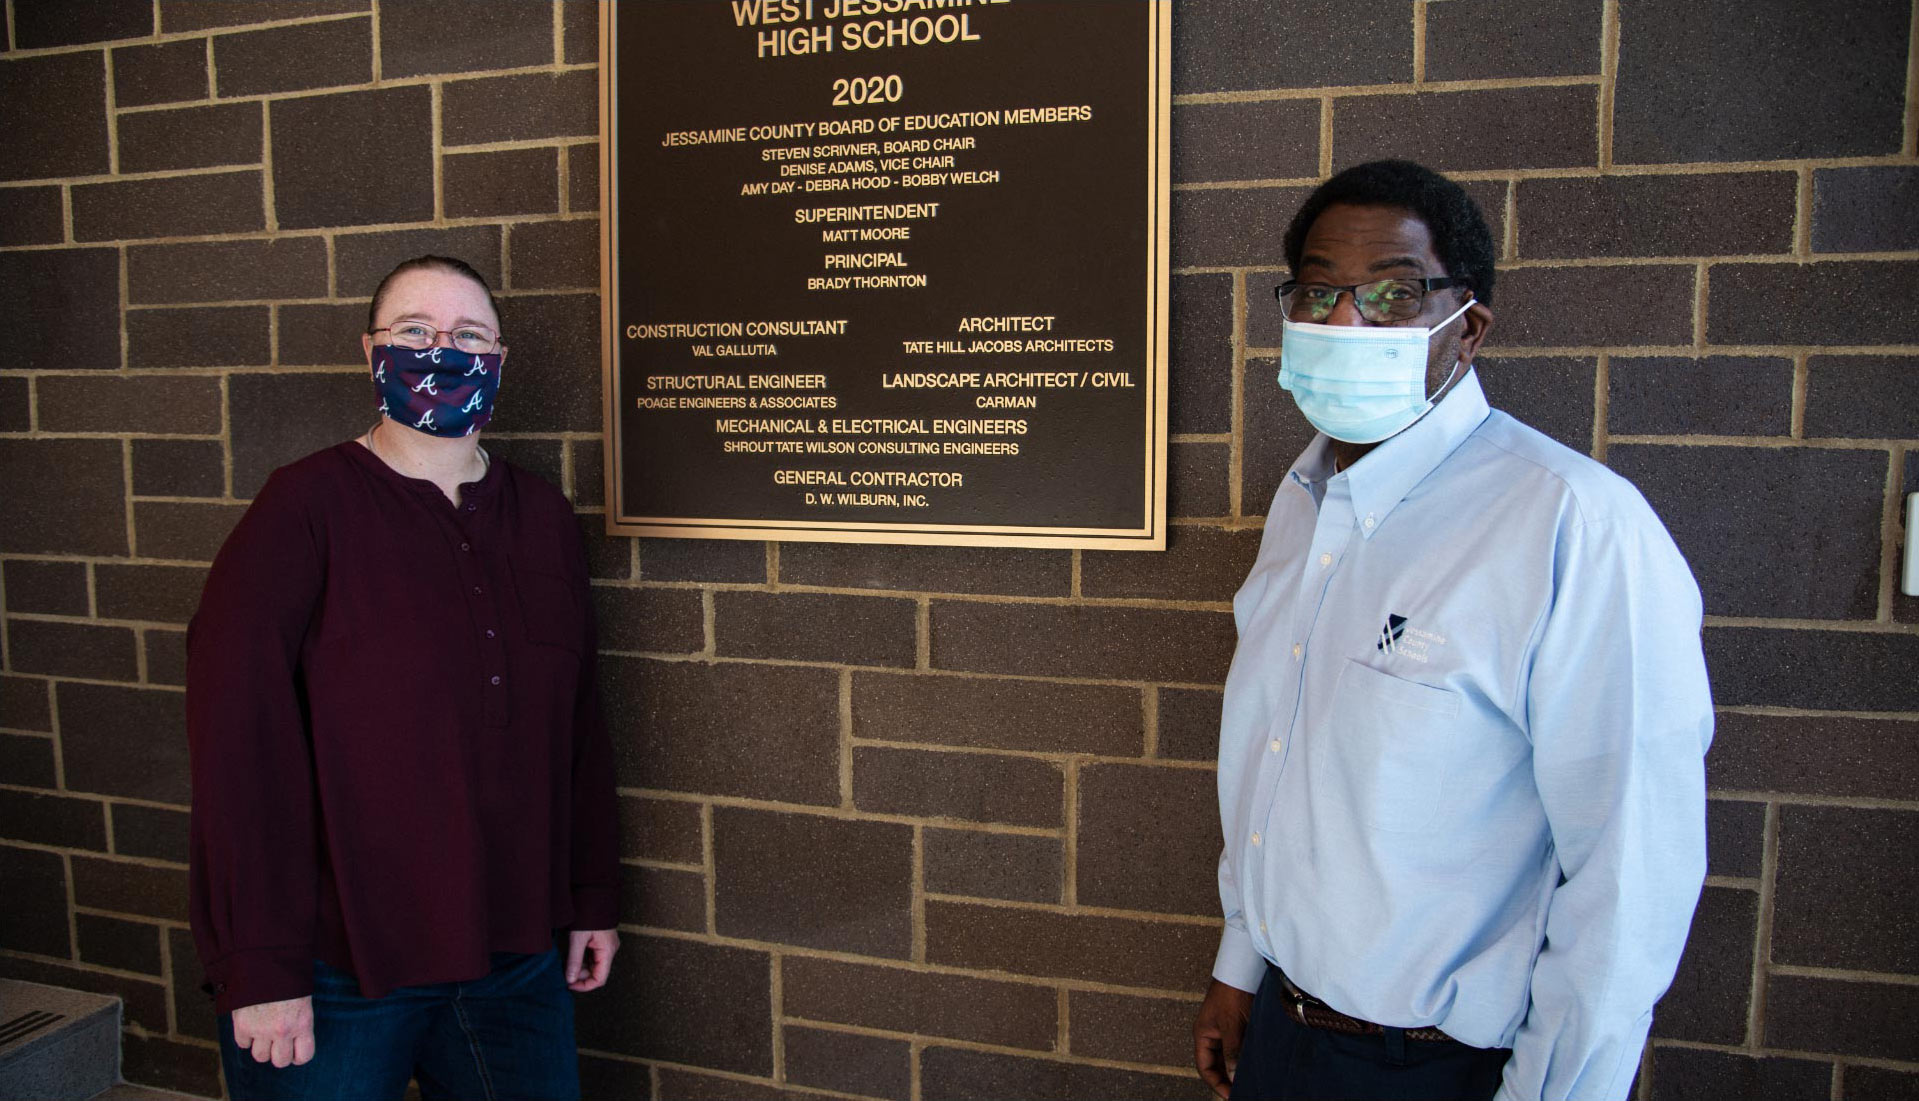 Ivan and Marci stand next to a West Jessamine High School plaque that's attached to a brick wall inside the school. Both are wearing masks and looking at the camera.